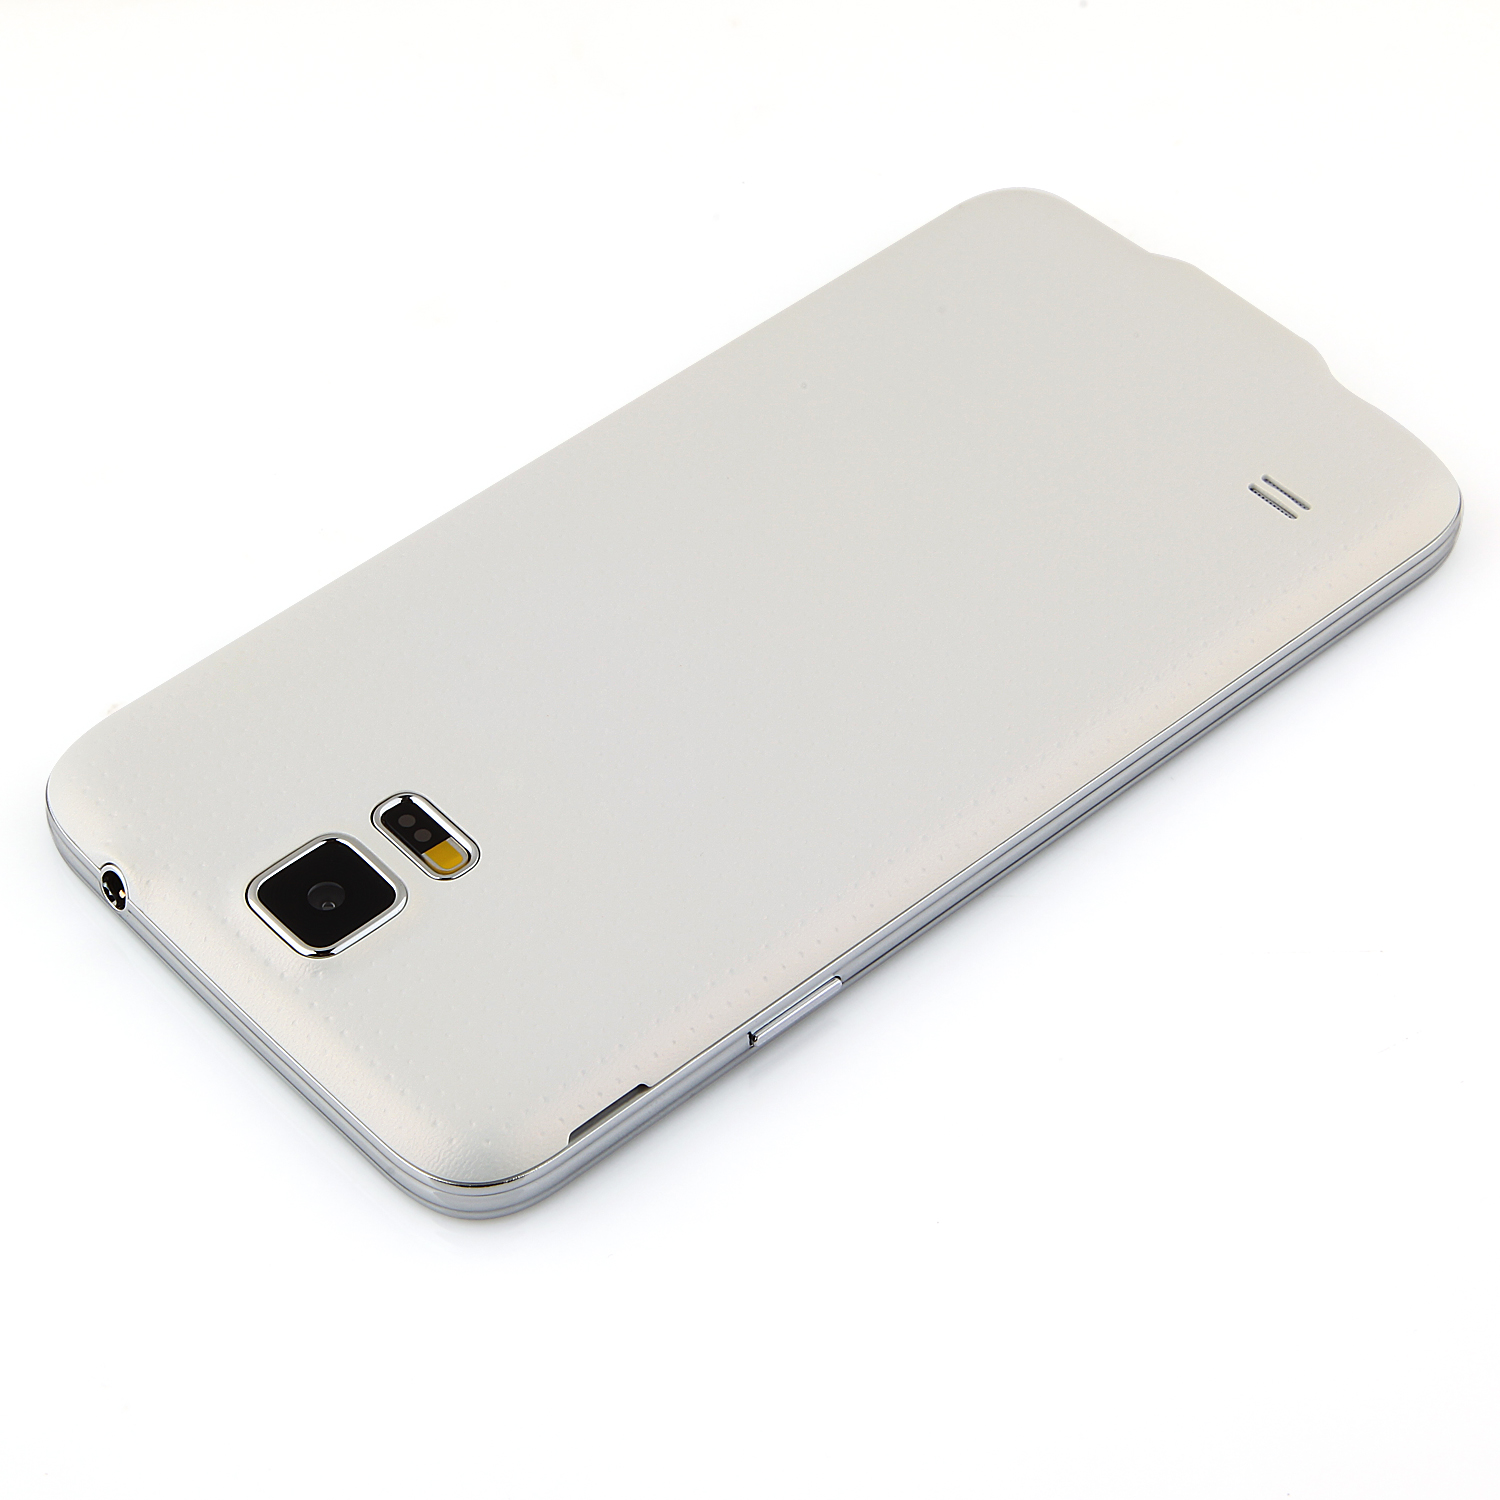 Used Doxio G900H Smartphone Android 4.2 MTK6572W  5.0 Inch 3G GPS White